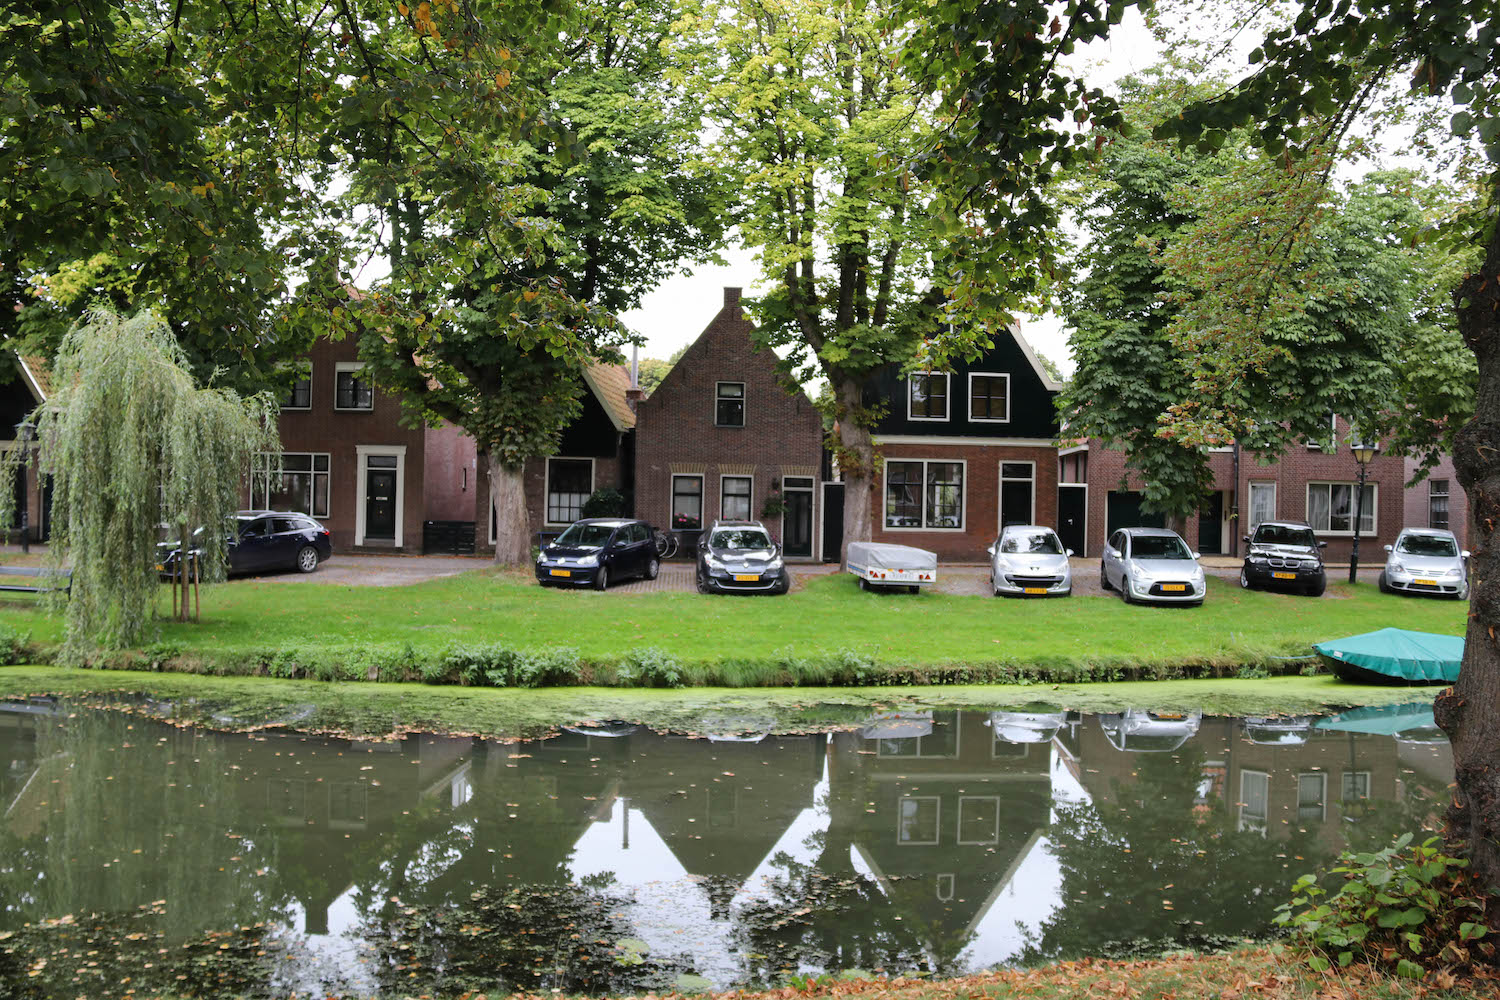 Edam in The Netherlands